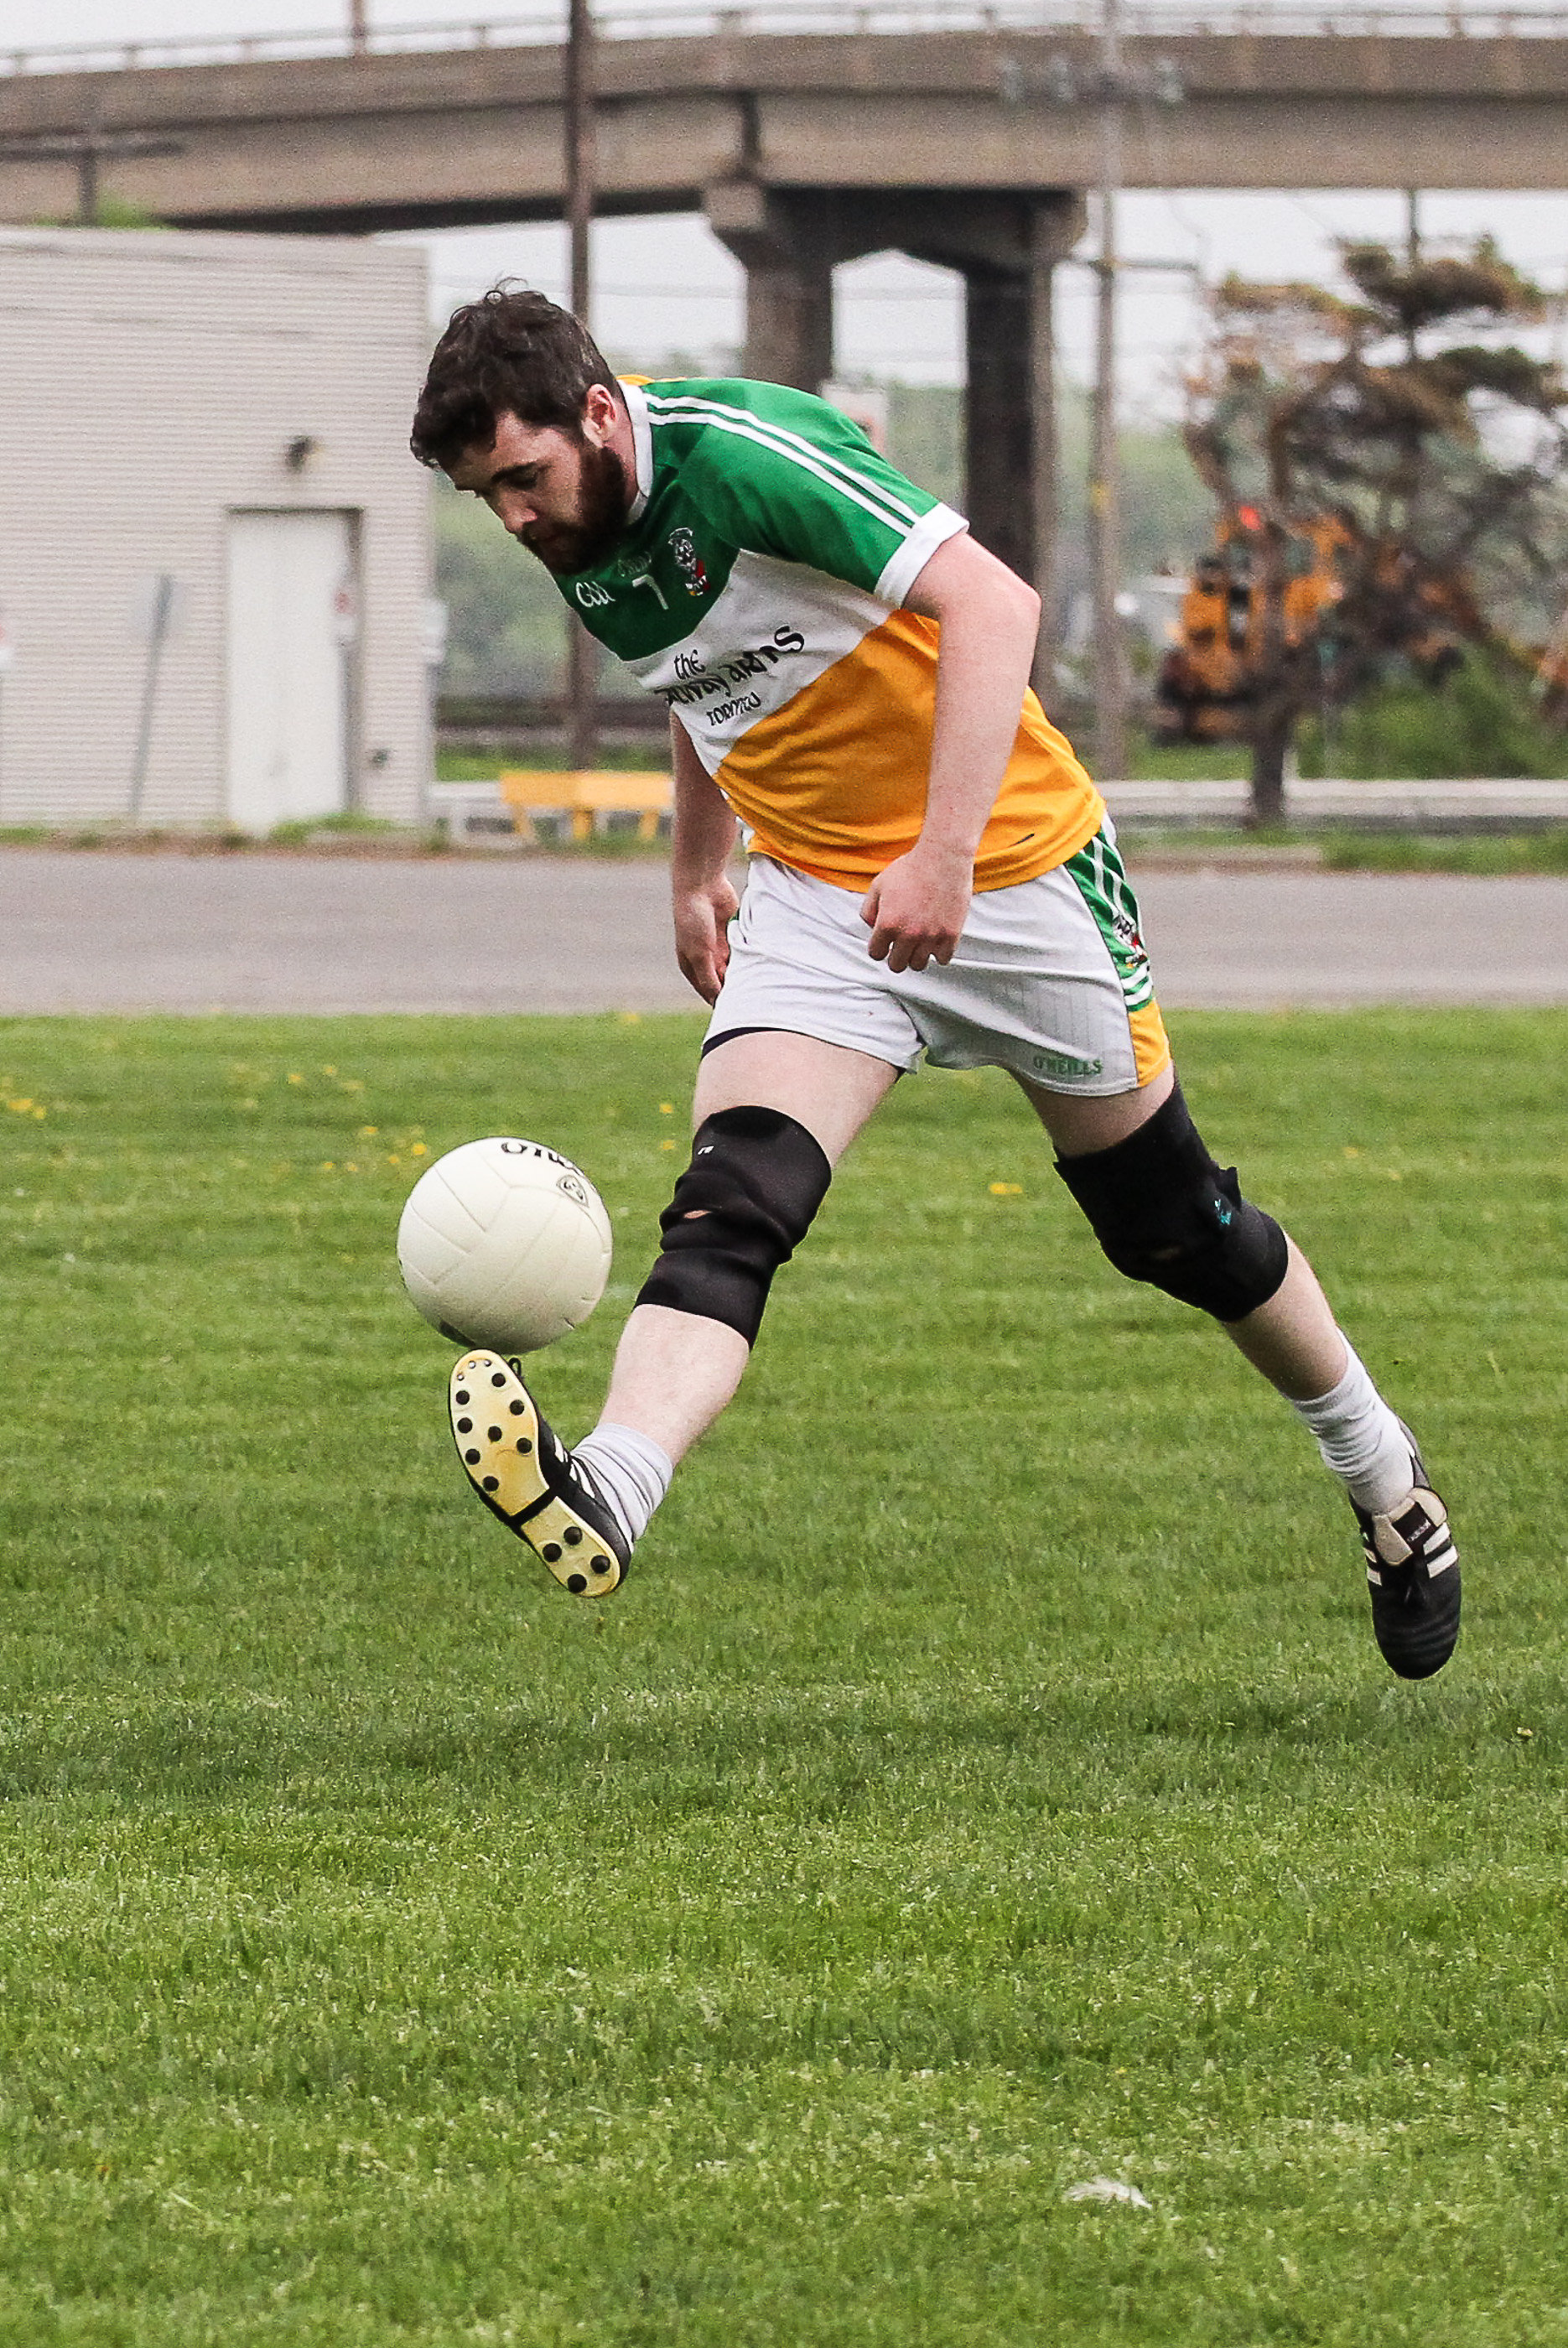 Toronto Gaels Gaelic Football Club - Montreal May Tournament 2015 - ShamrocksvsGaels(30of30).jpg